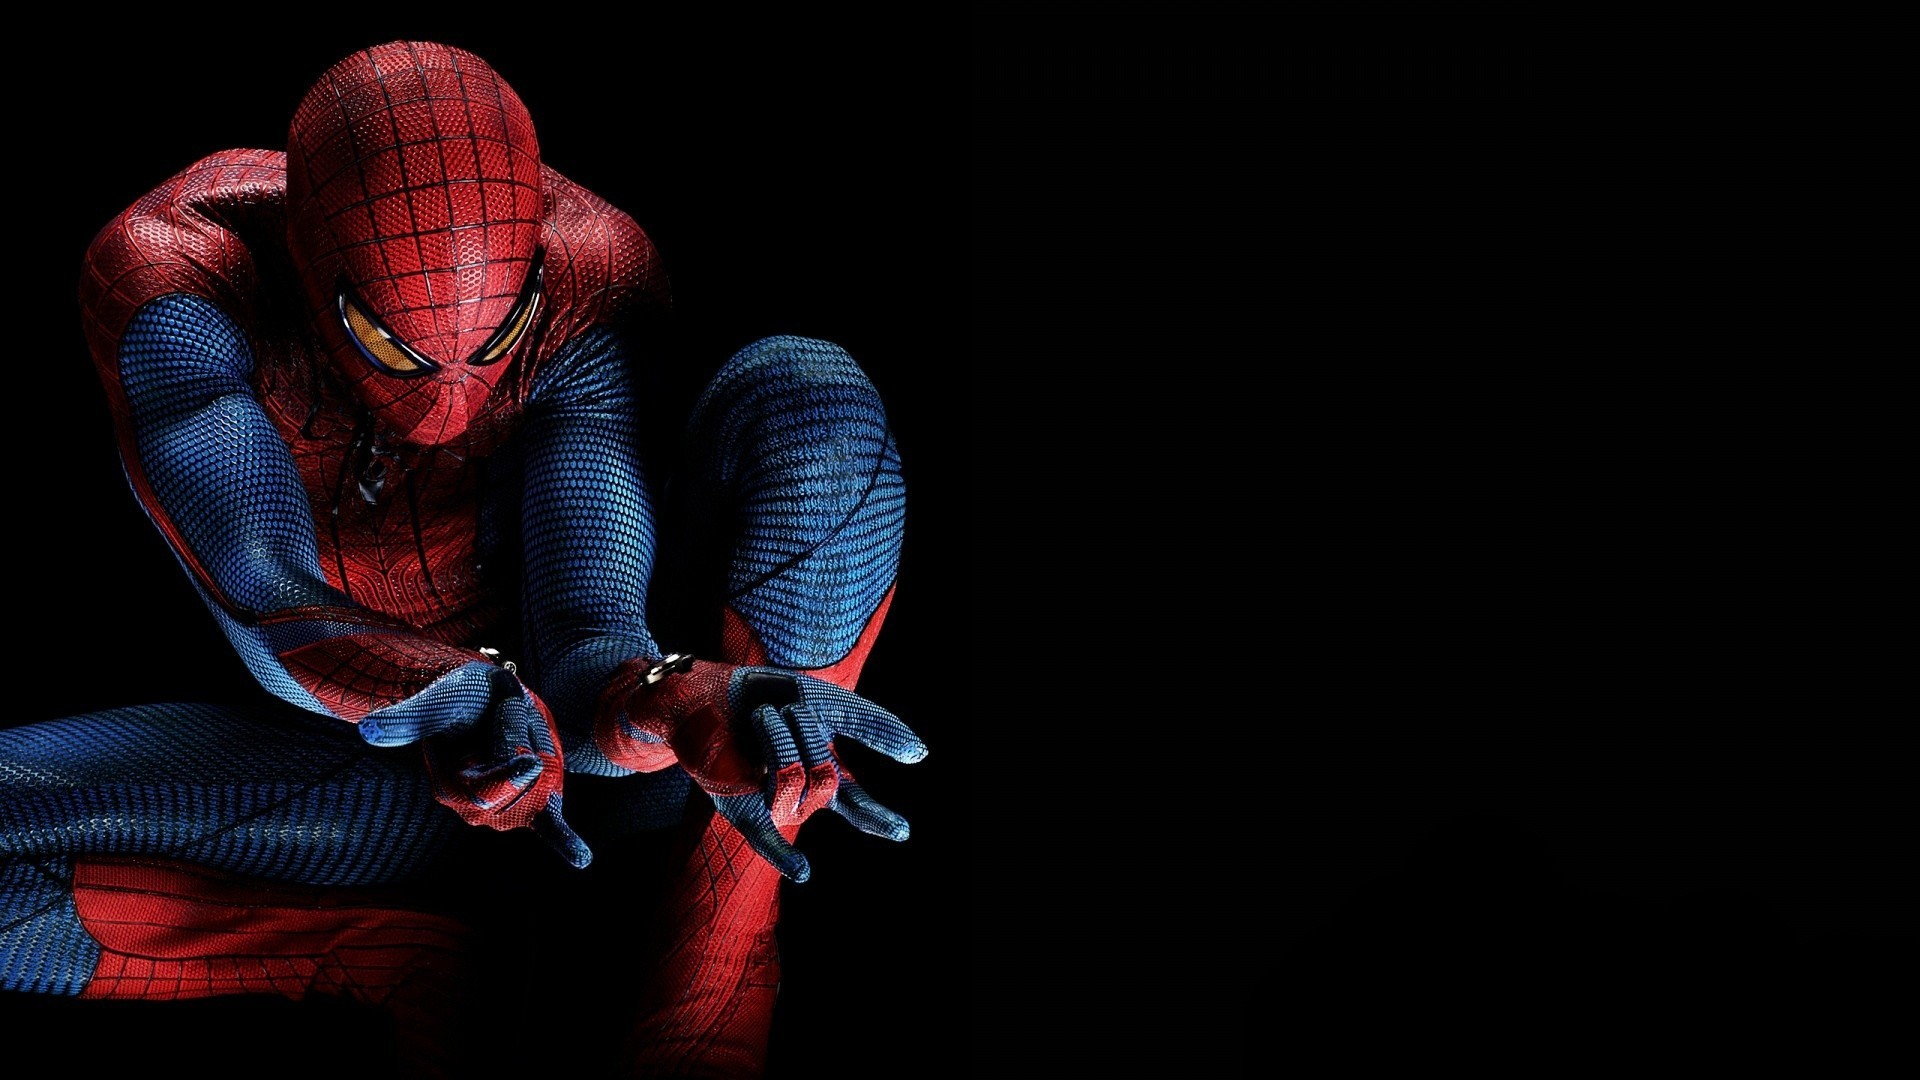 43+ Marvel wallpapers ·① Download free stunning full HD ...